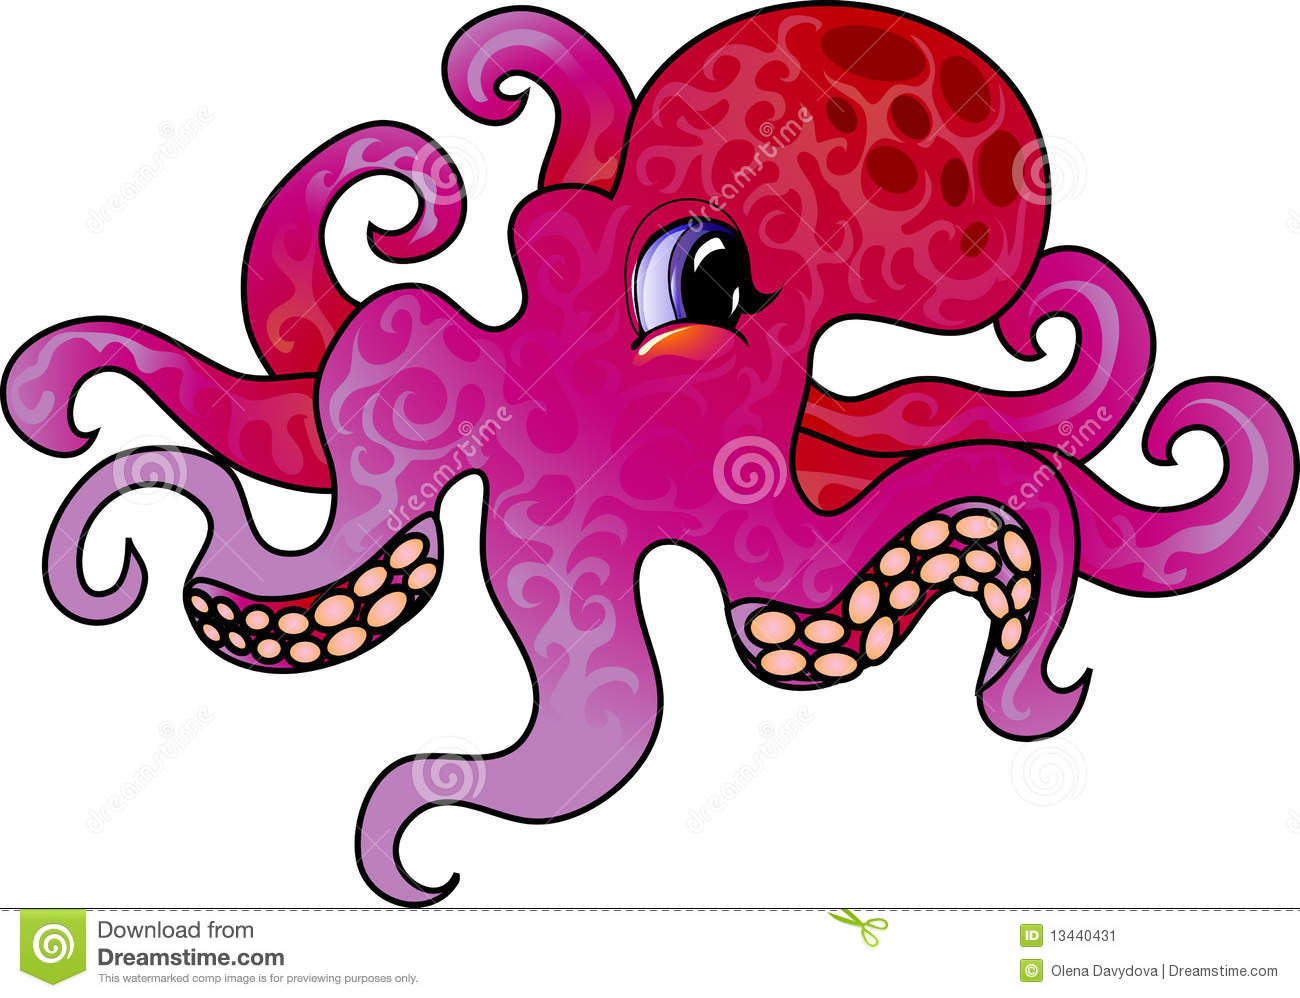 Cartoon octopus stock illustration illustration of for Octopus in cartoon